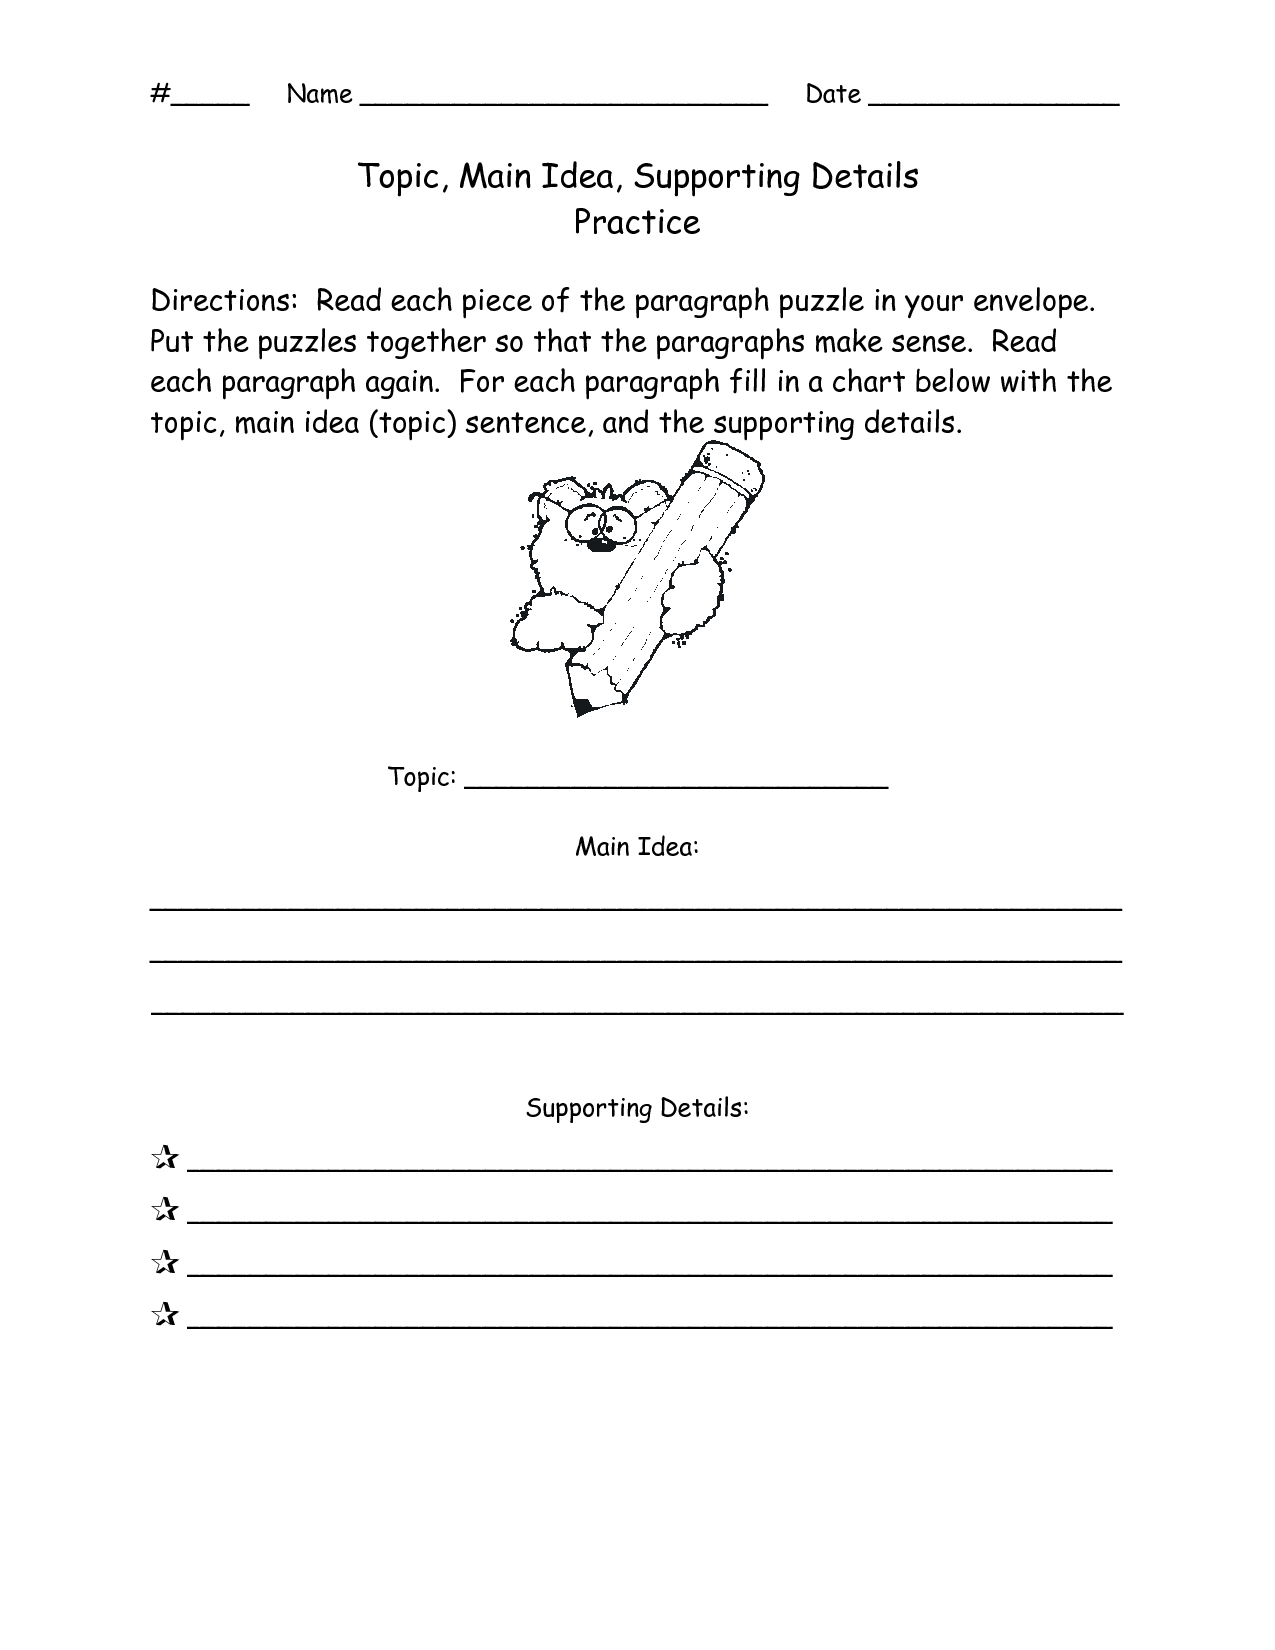 13 Best Images of Idea Supporting And Main Worksheets Details Practice  Main Idea and